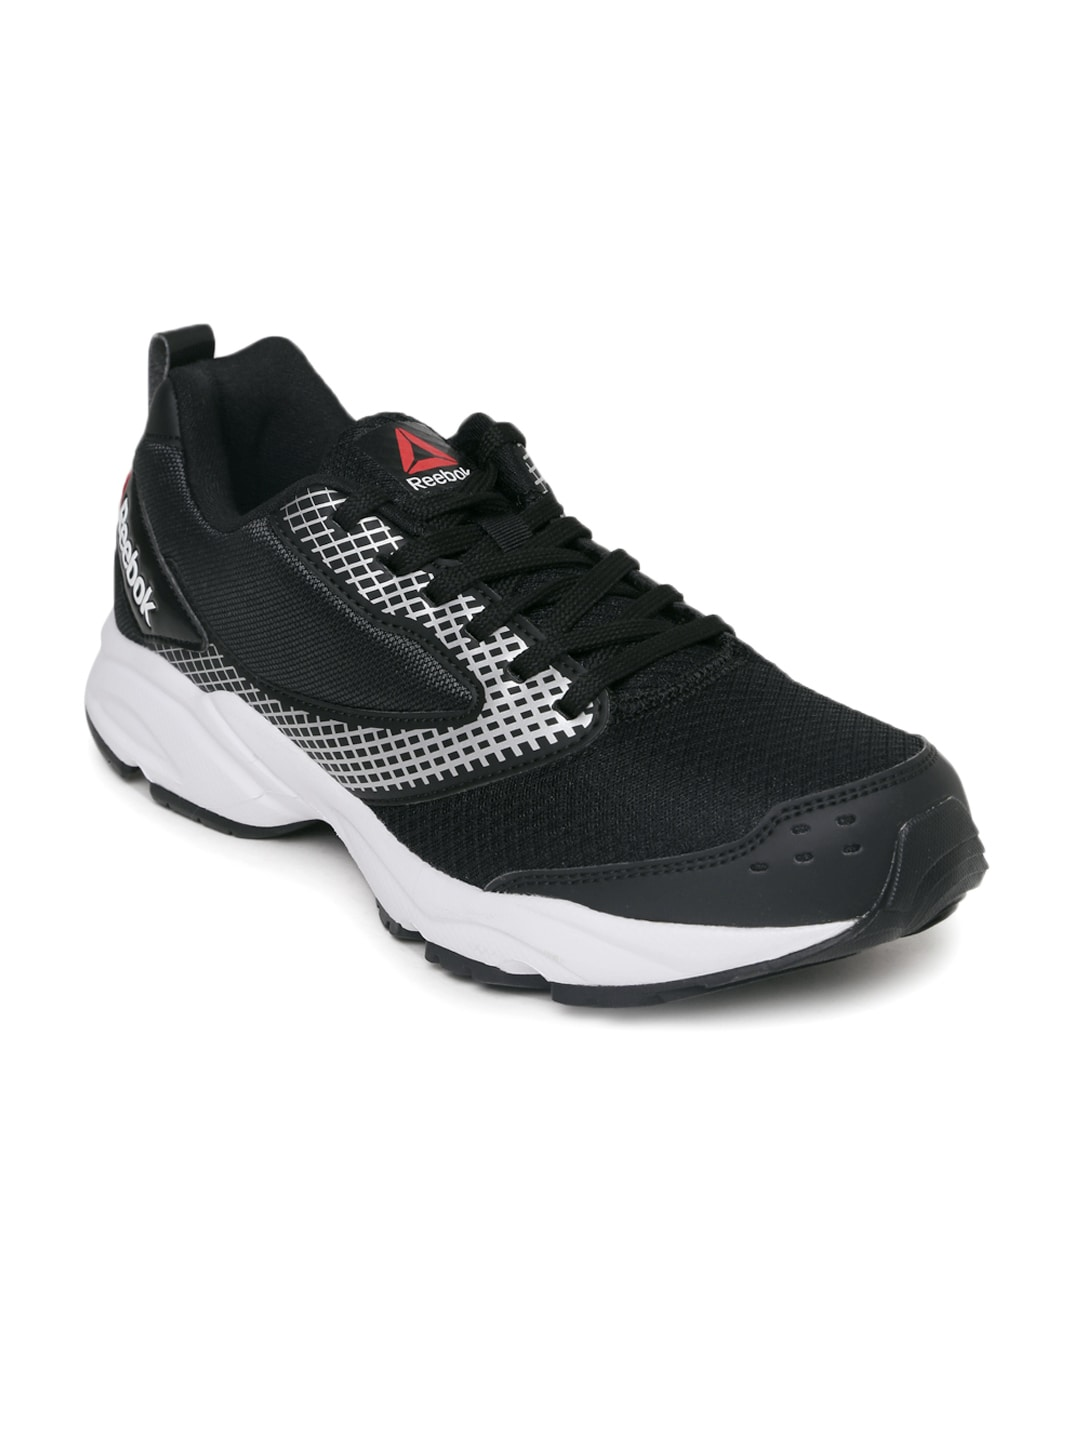 Reebok Basketball Shoes - Buy Reebok Basketball Shoes Online in India ceb818ade